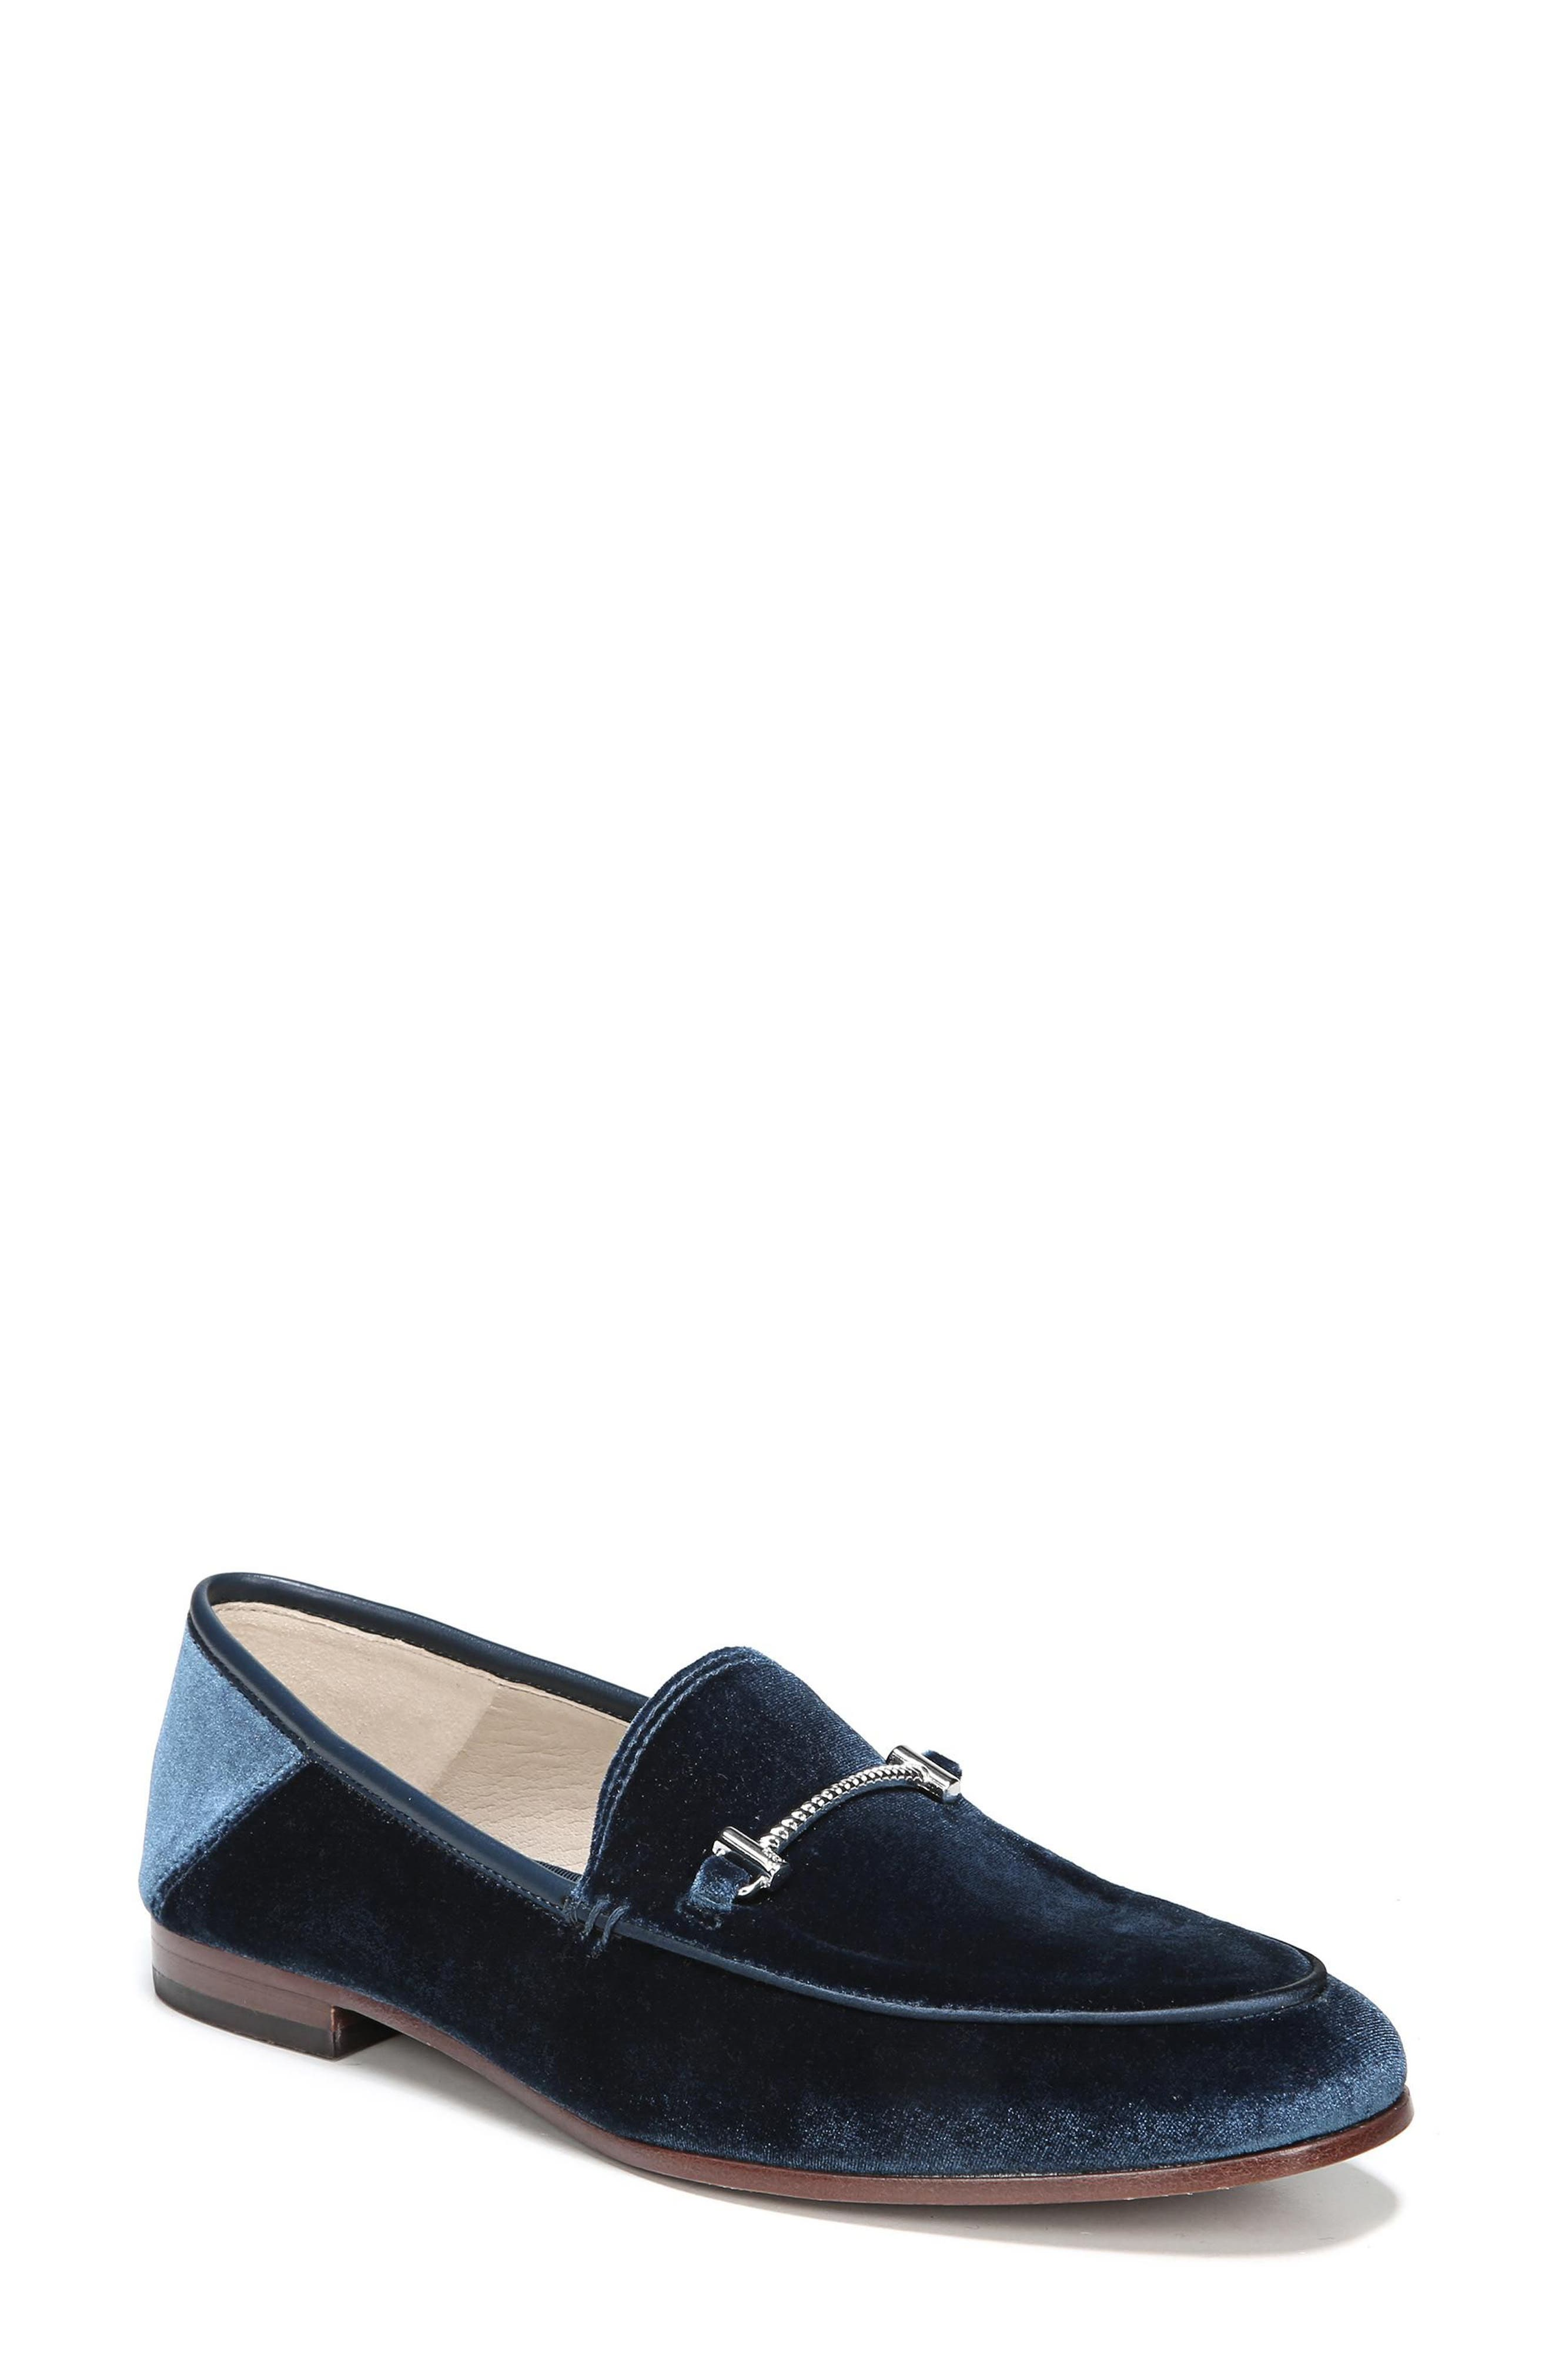 Metallic Moccasins Loafers For Women Nordstrom